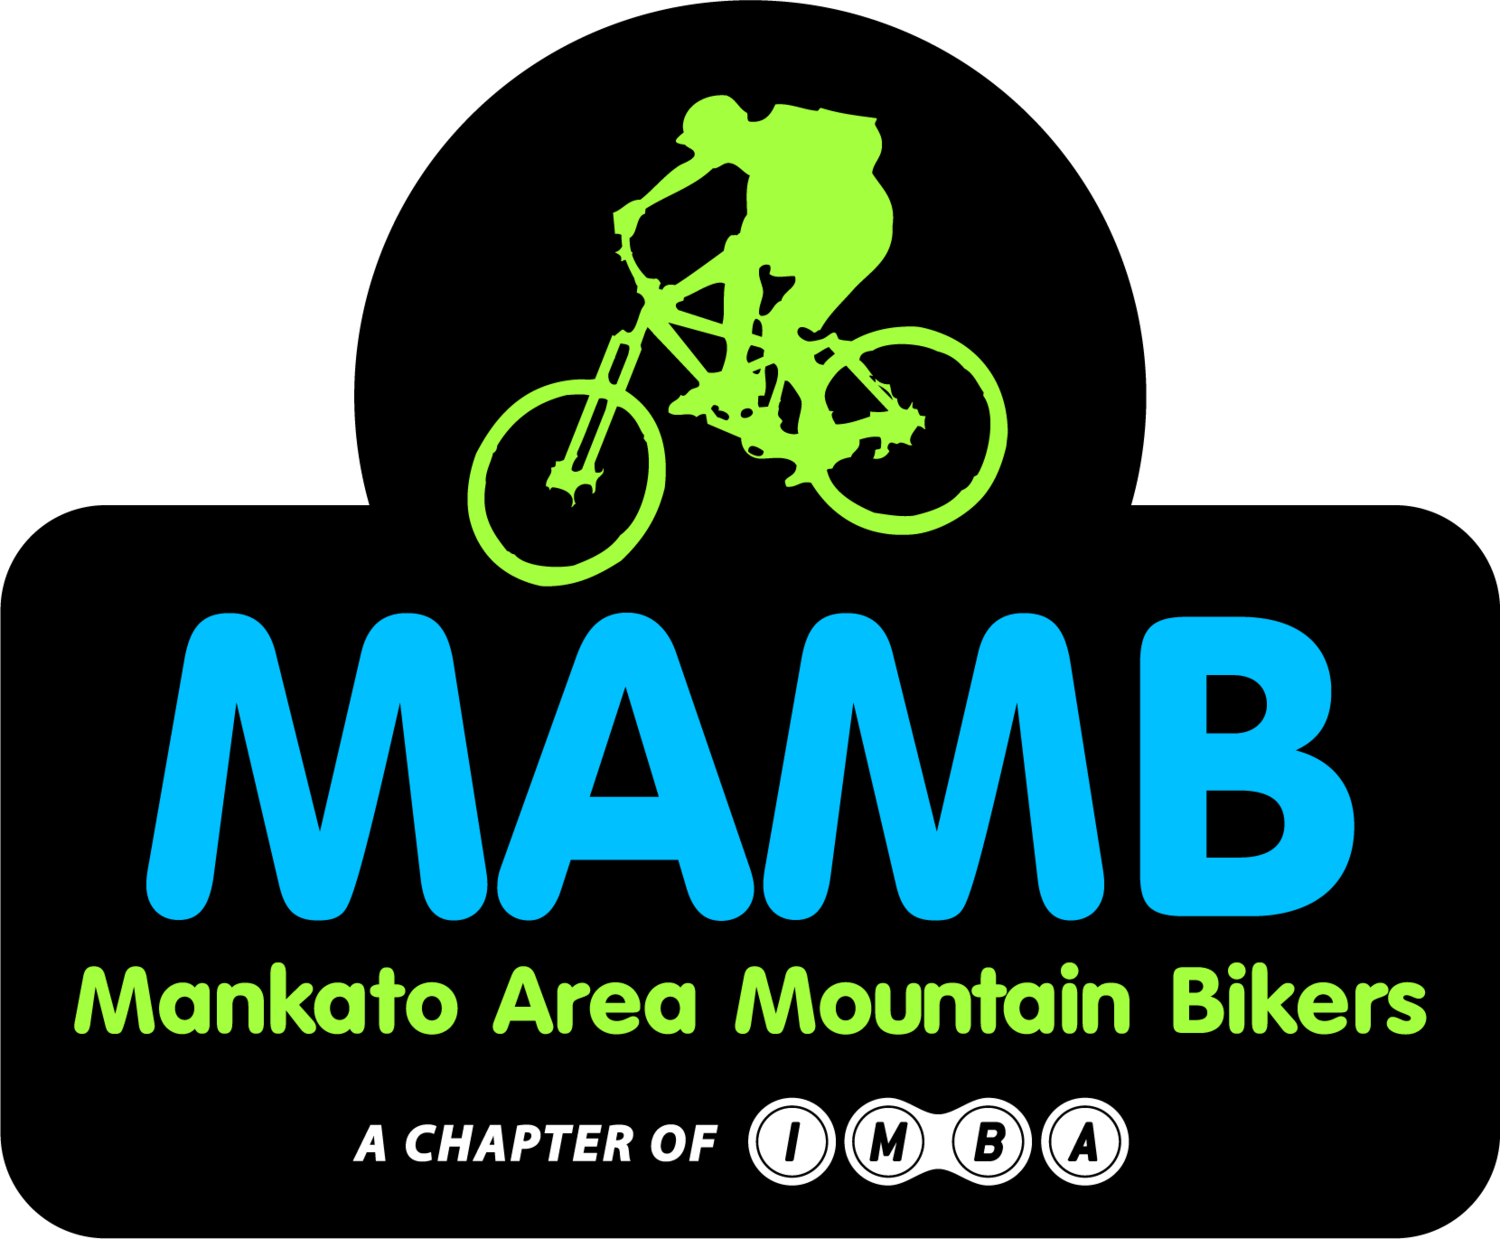 Mankato Area Mountain Bikers